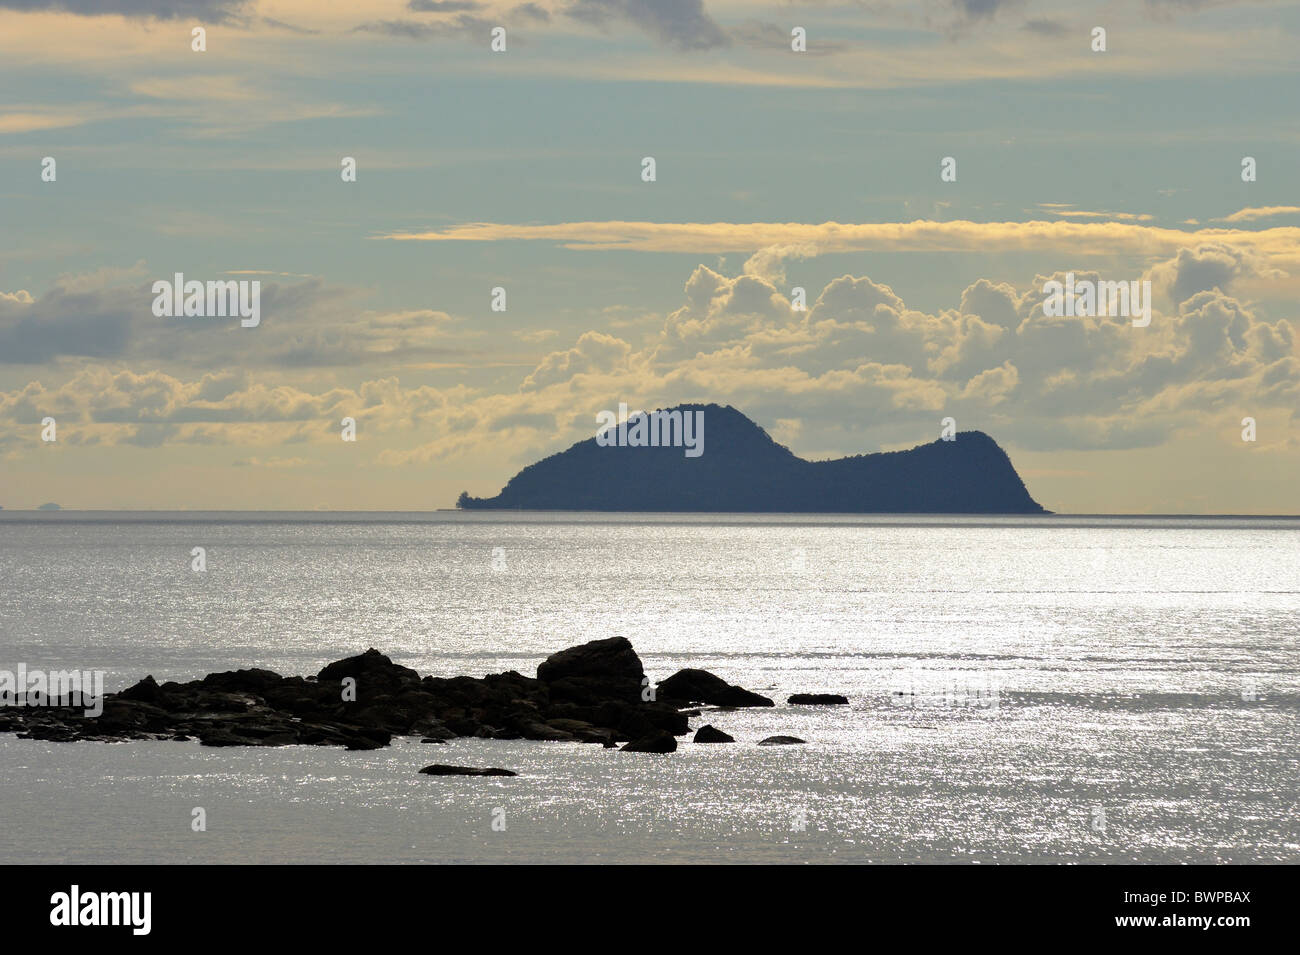 Satang Island in silhouette on the South China Sea, Sarawak, Malaysia, Asia. View from Damai beach. - Stock Image